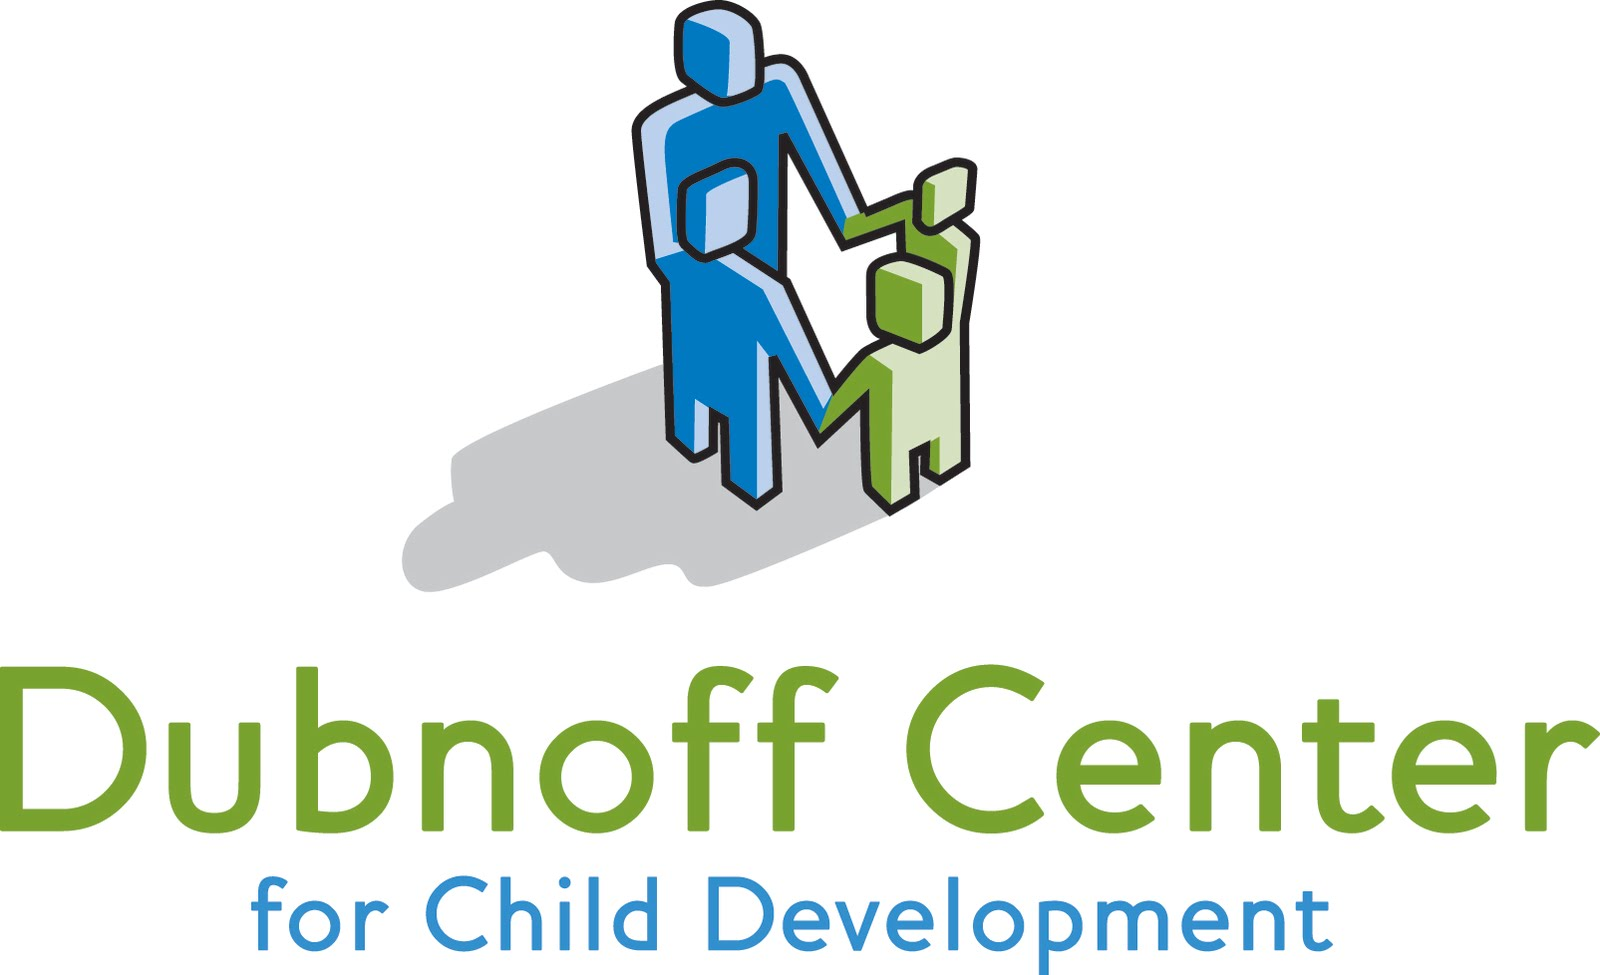 Dubnoff Center for Child Development